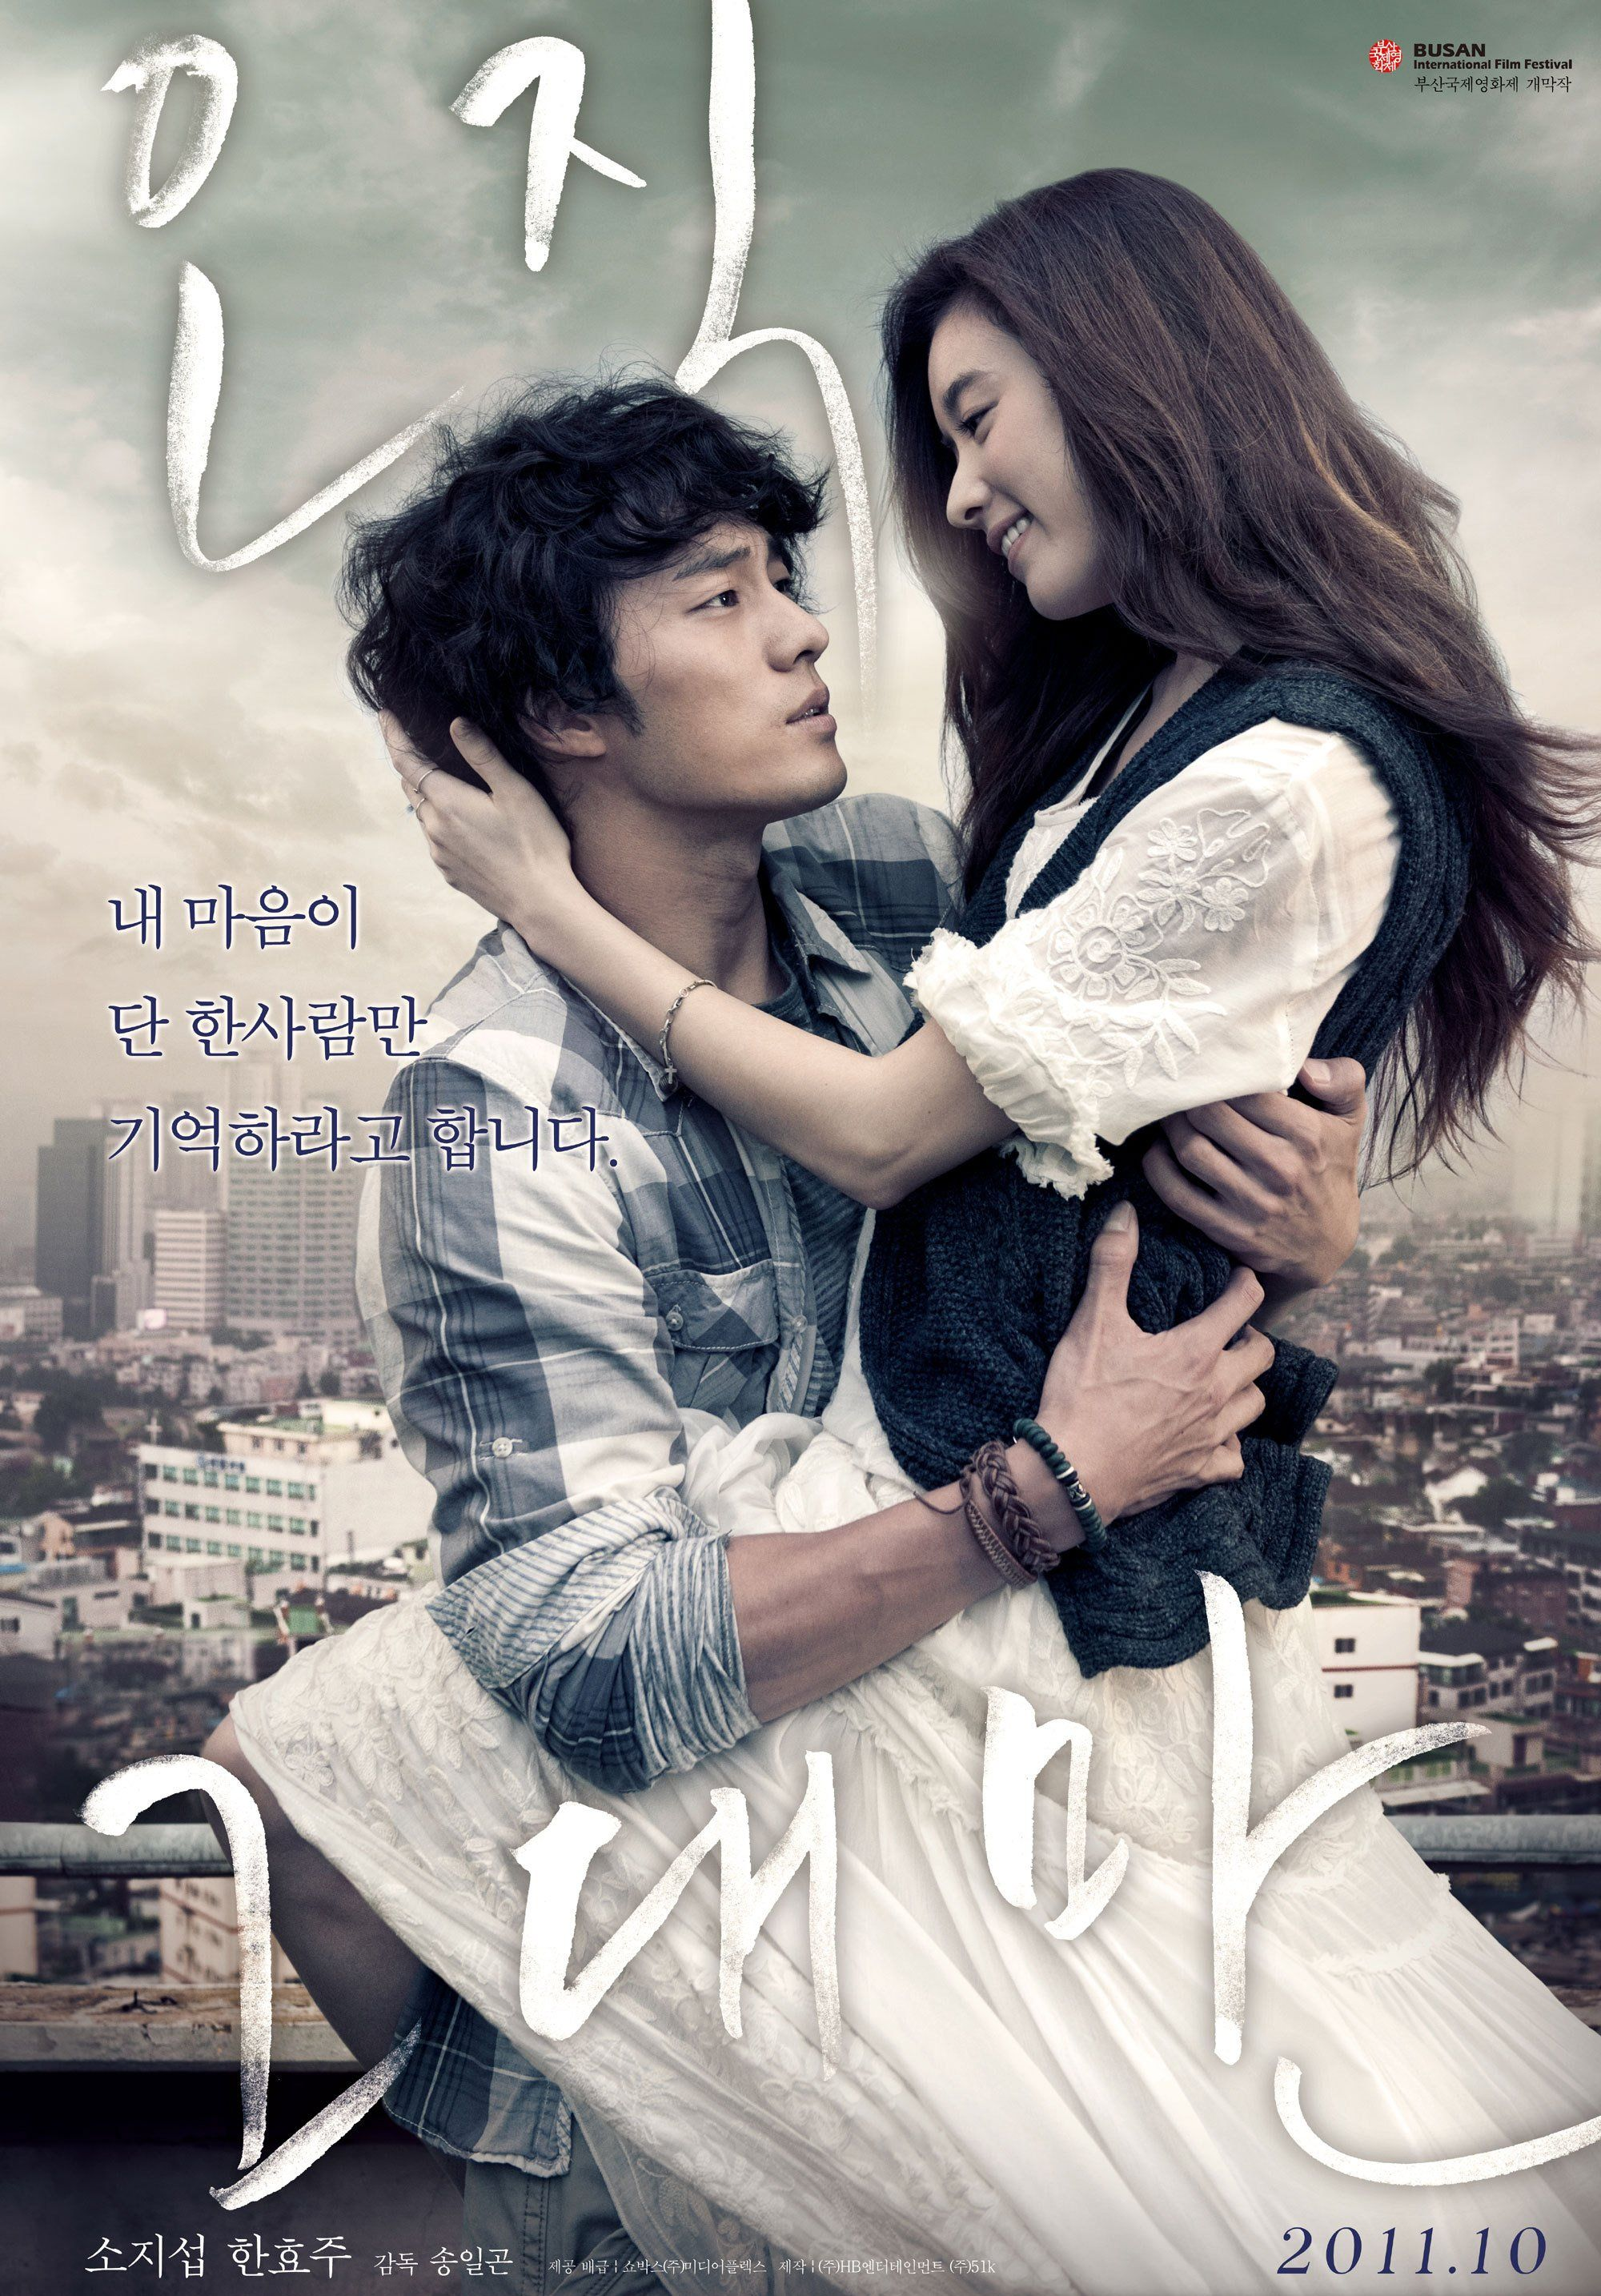 Added new posters for the Korean movie 'Always